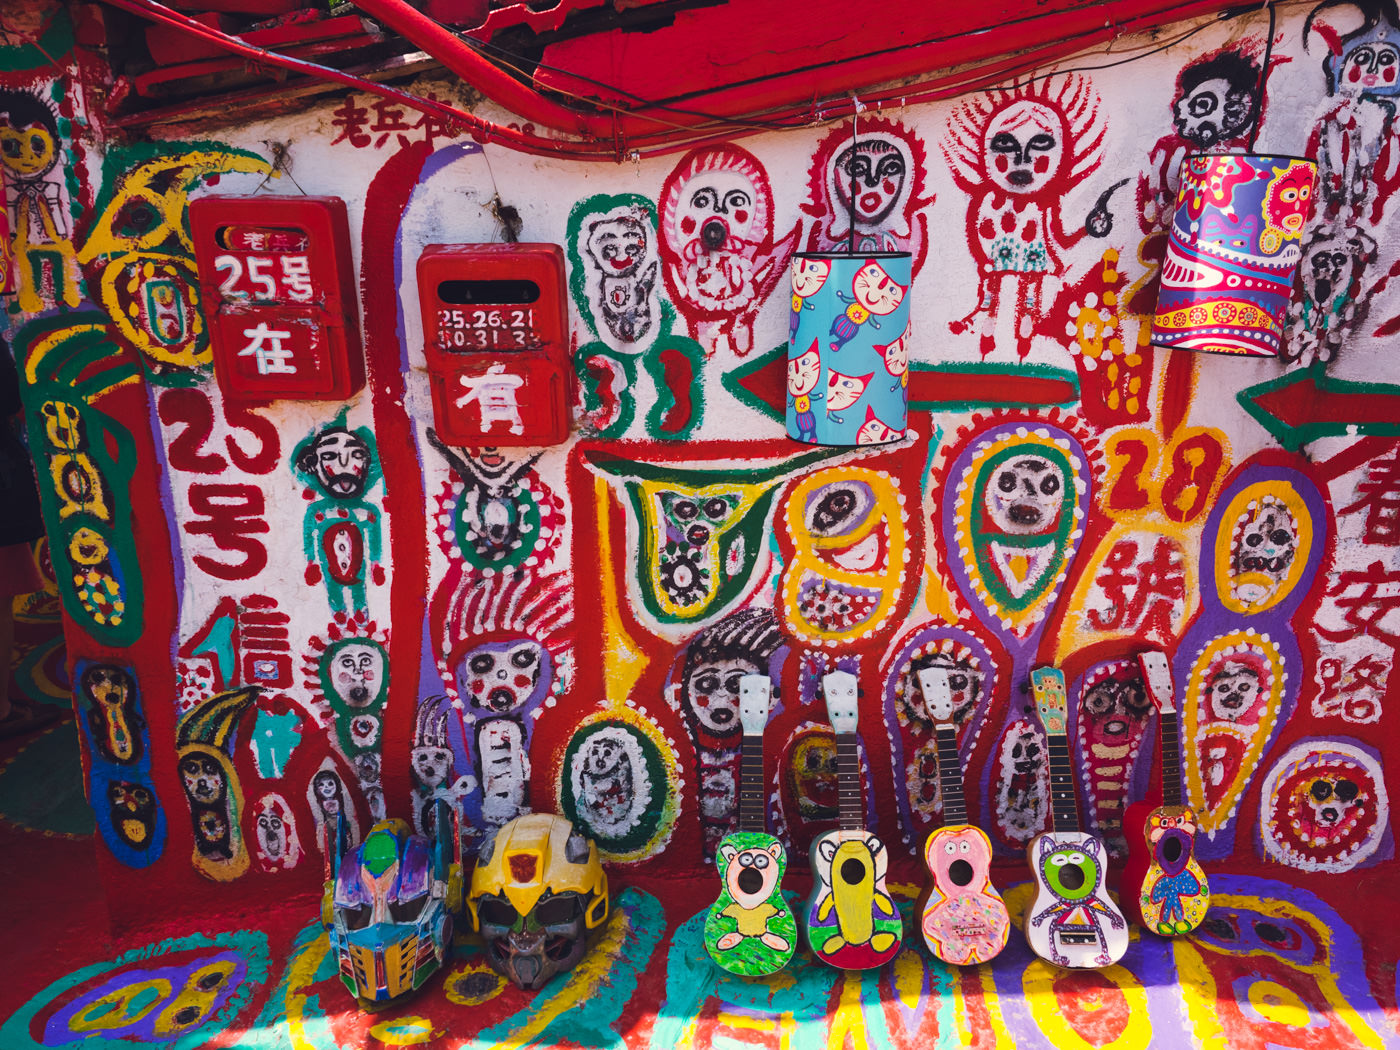 Taiwan - Rainbow Village - Hand painted ukuleles